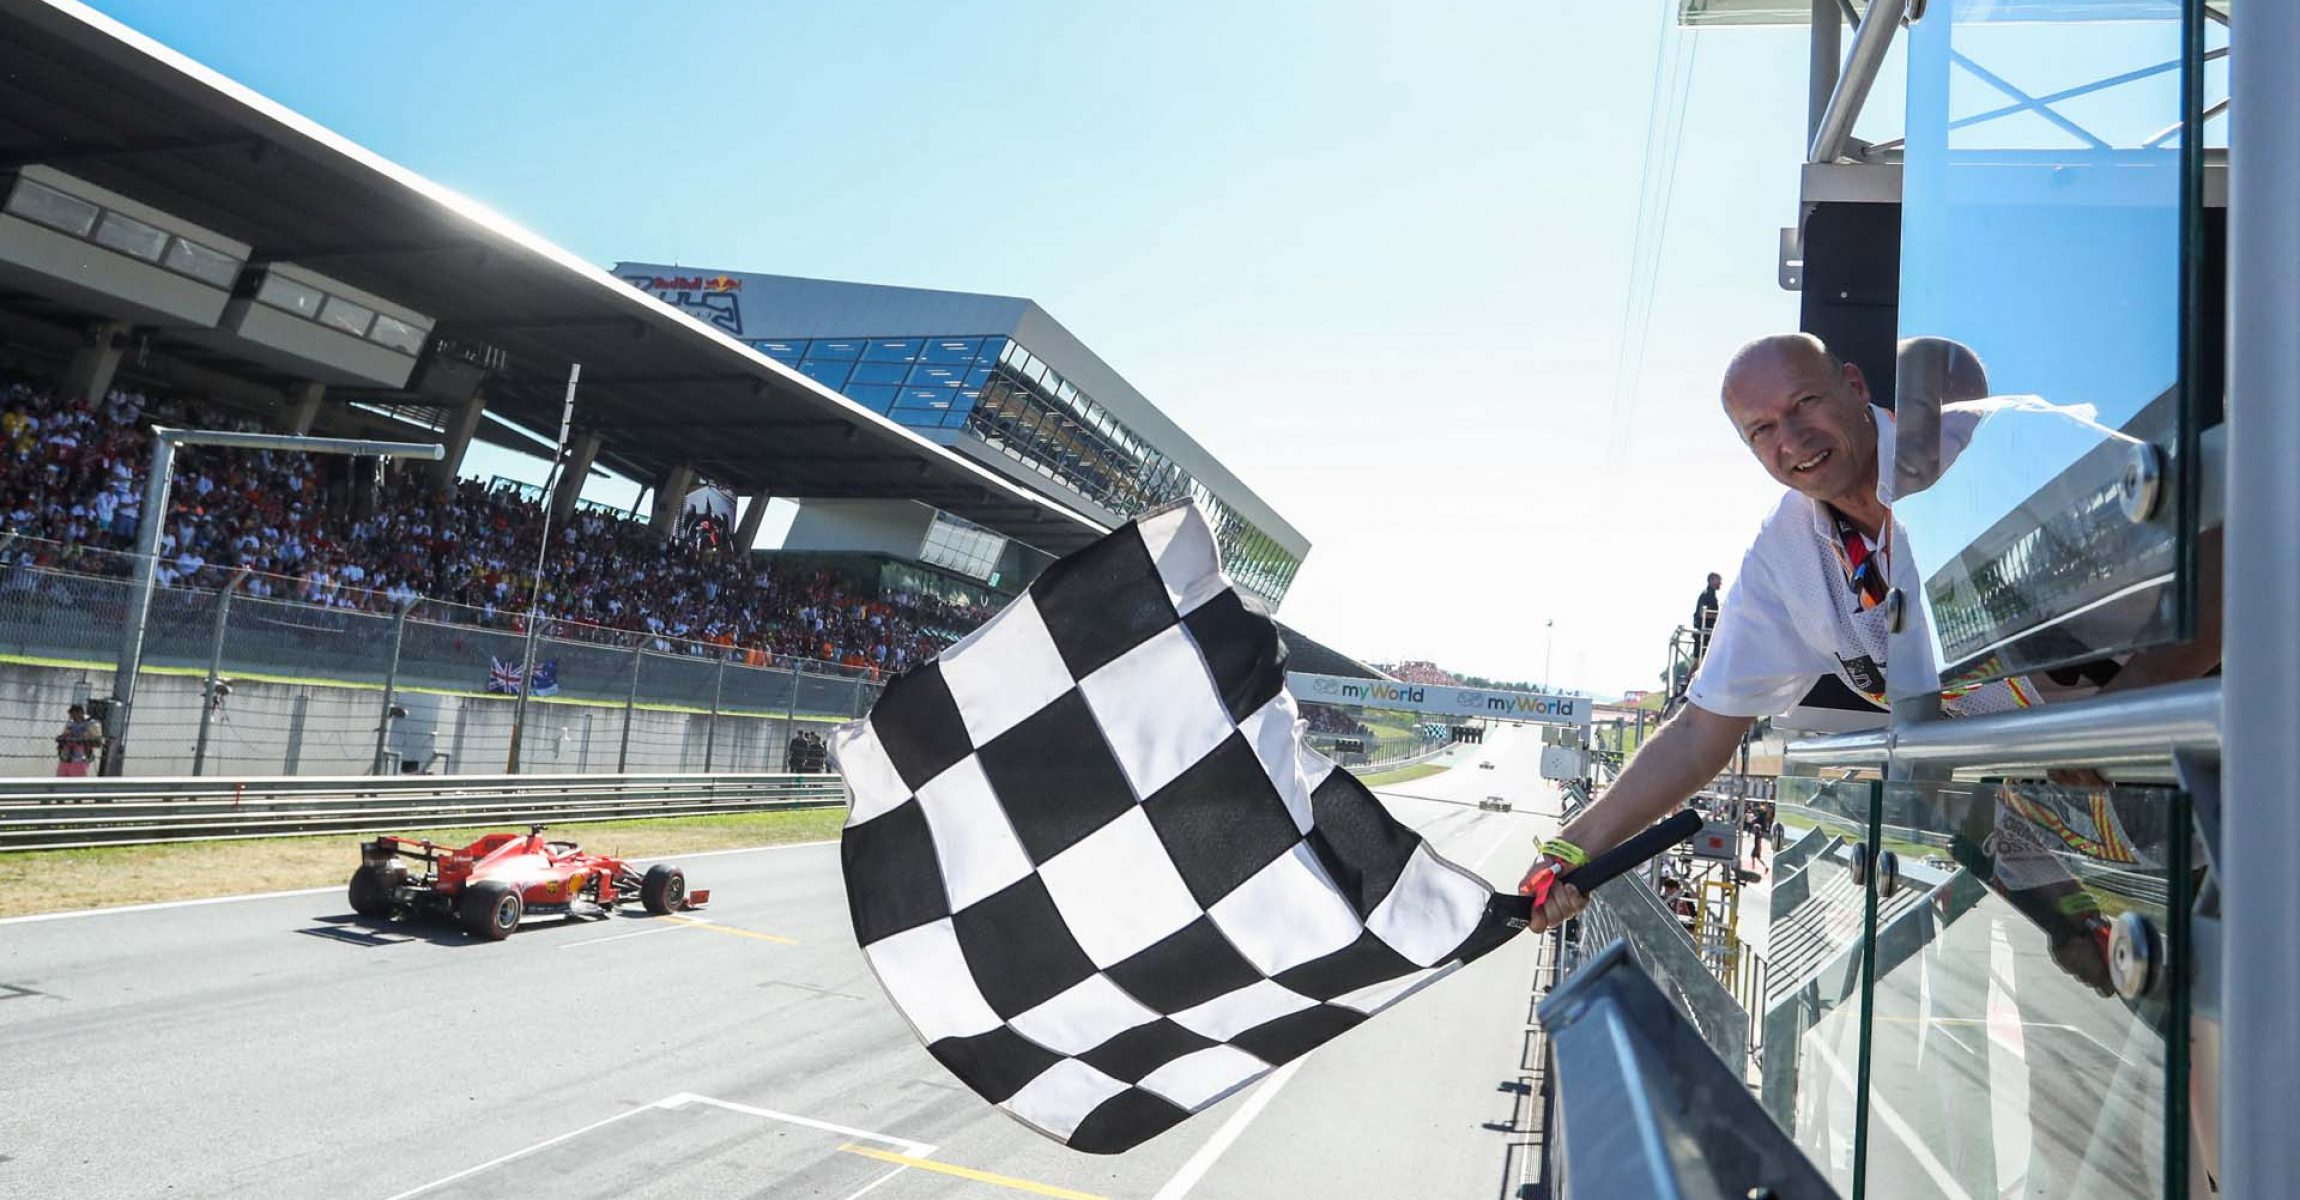 SPIELBERG,AUSTRIA,30.JUN.19 - MOTORSPORTS, FORMULA 1 - Grand Prix of Austria, Red Bull Ring. Image shows Sebastian Vettel (GER/ Ferrari) and the superfan. Photo: GEPA pictures/ Daniel Goetzhaber - For editorial use only. Image is free of charge.